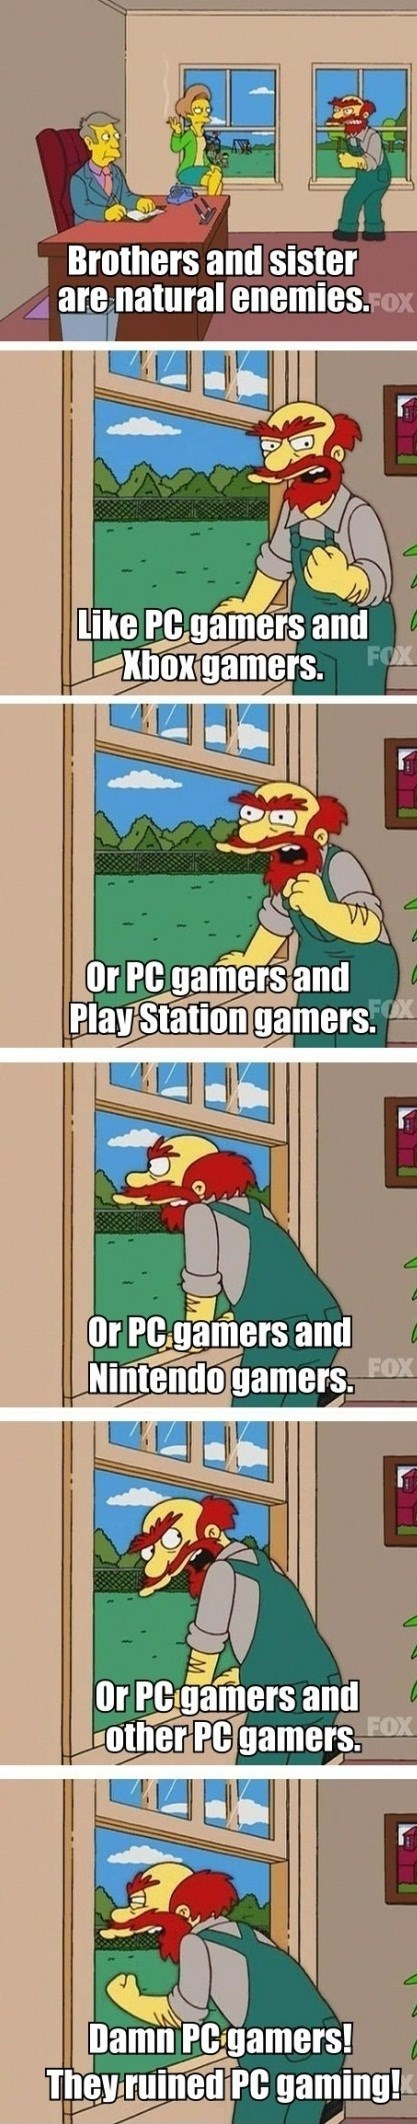 PC ruiner race,gamers,the simpsons